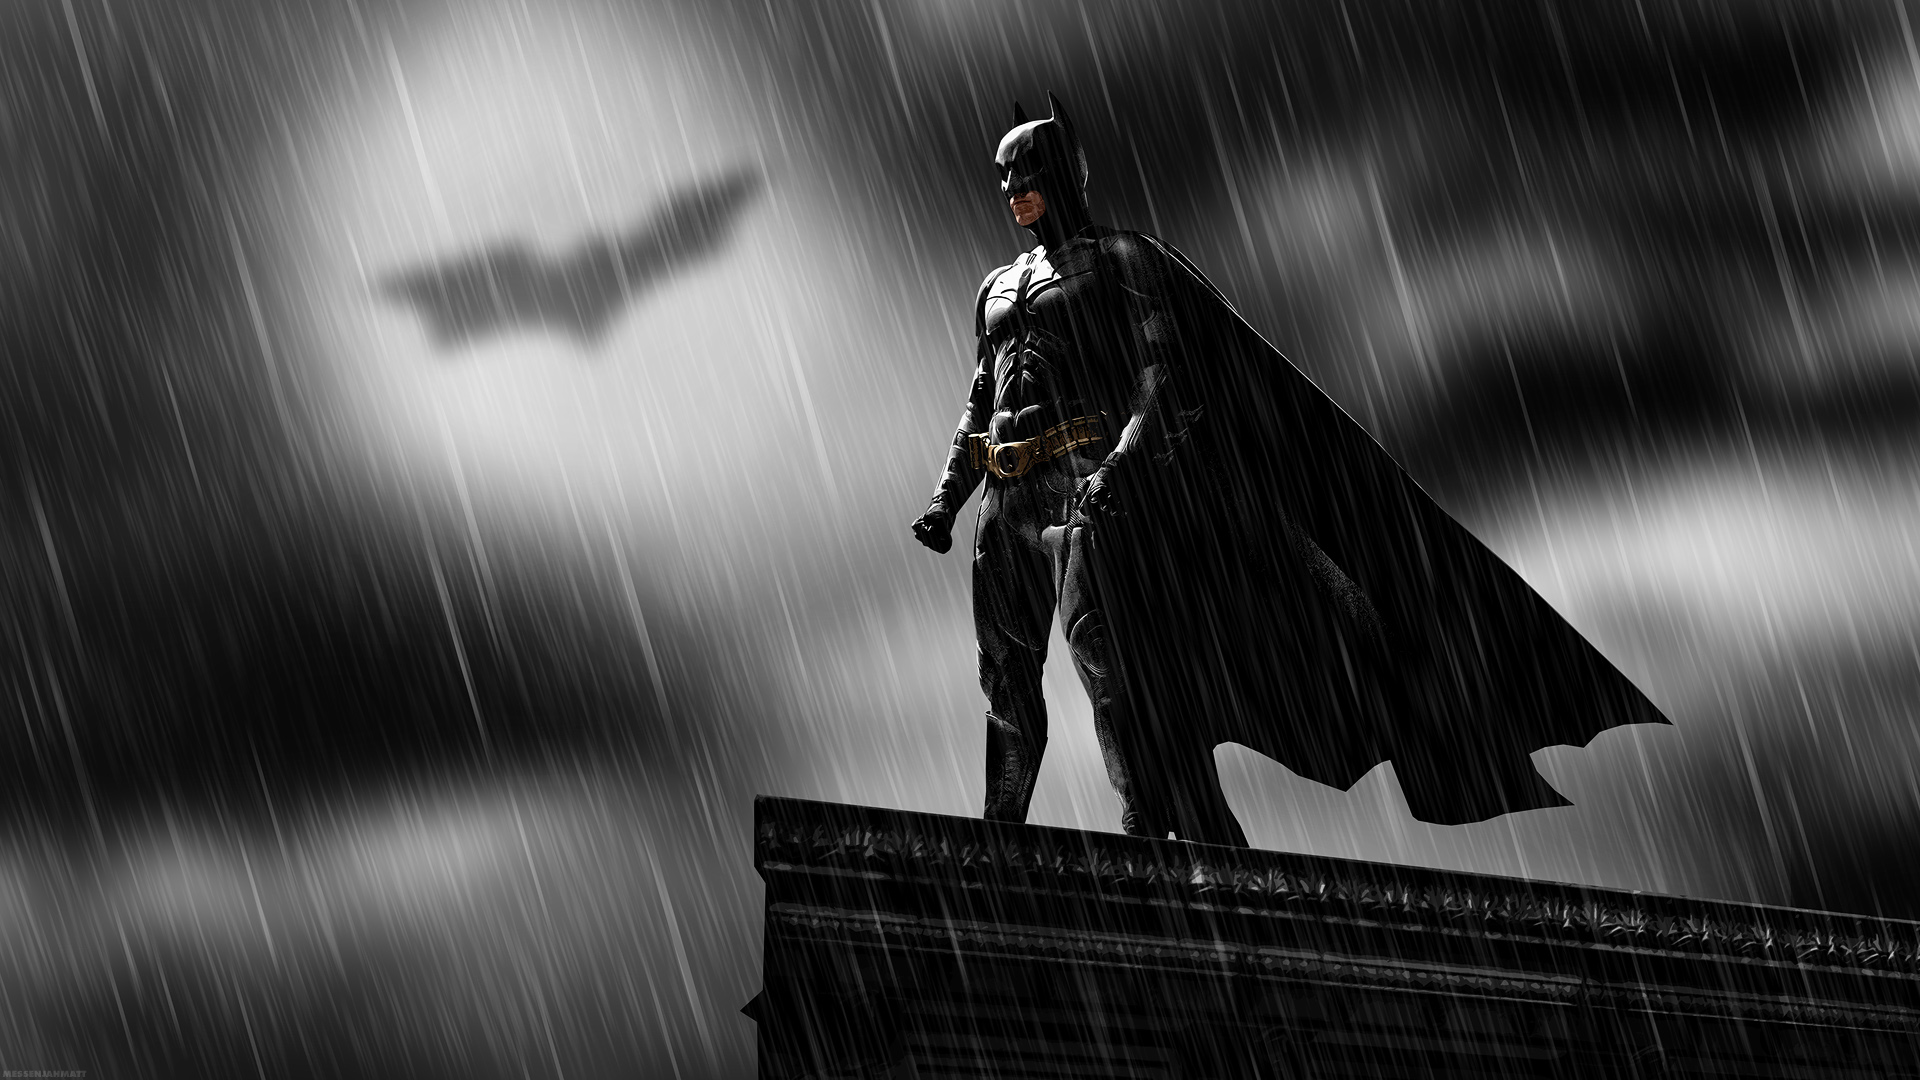 30 Batman HD Wallpapers for Desktop 1920x1080